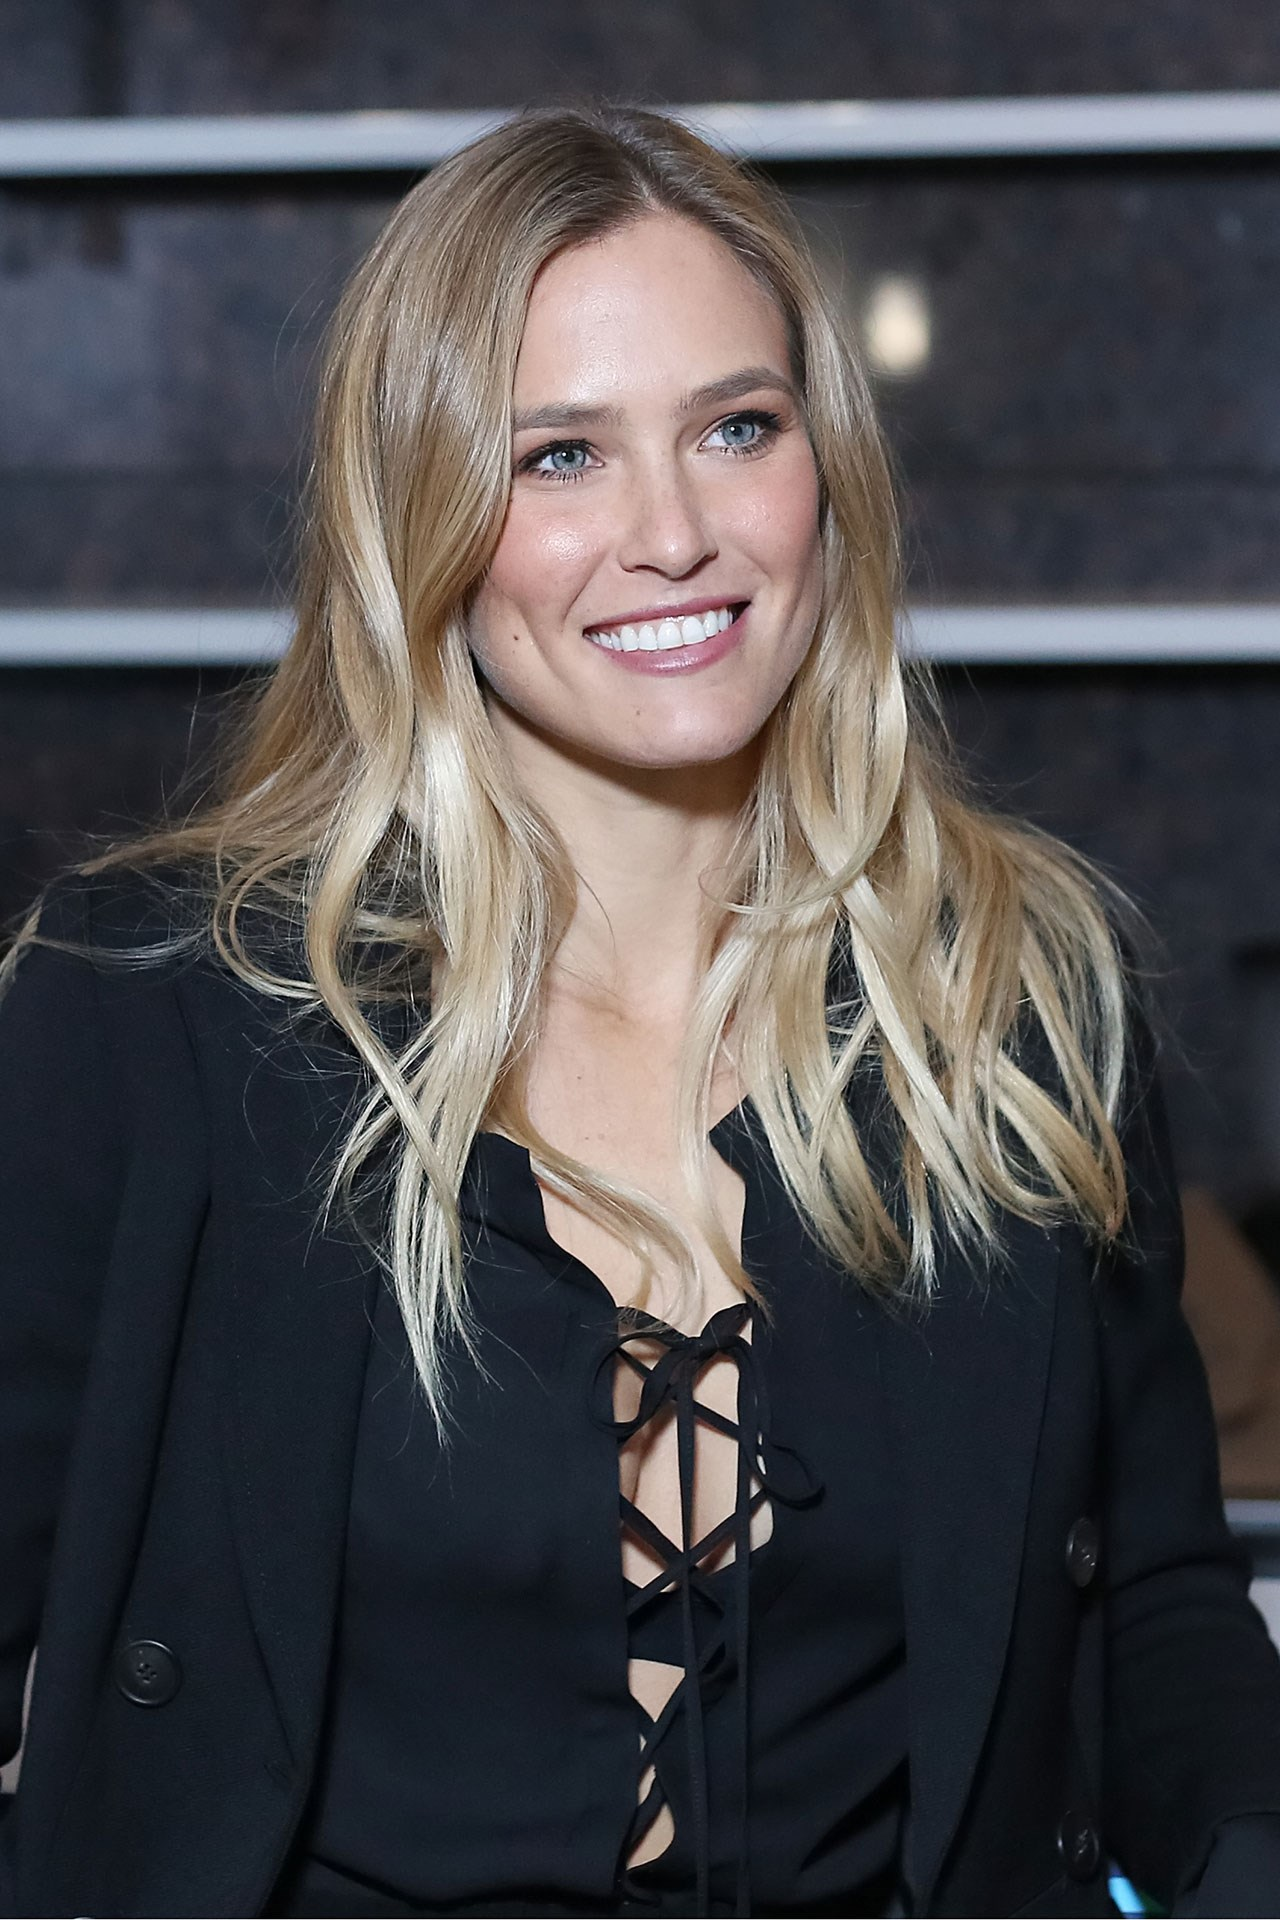 Bar Refaeli Plastic Surgery Before and After Picturess